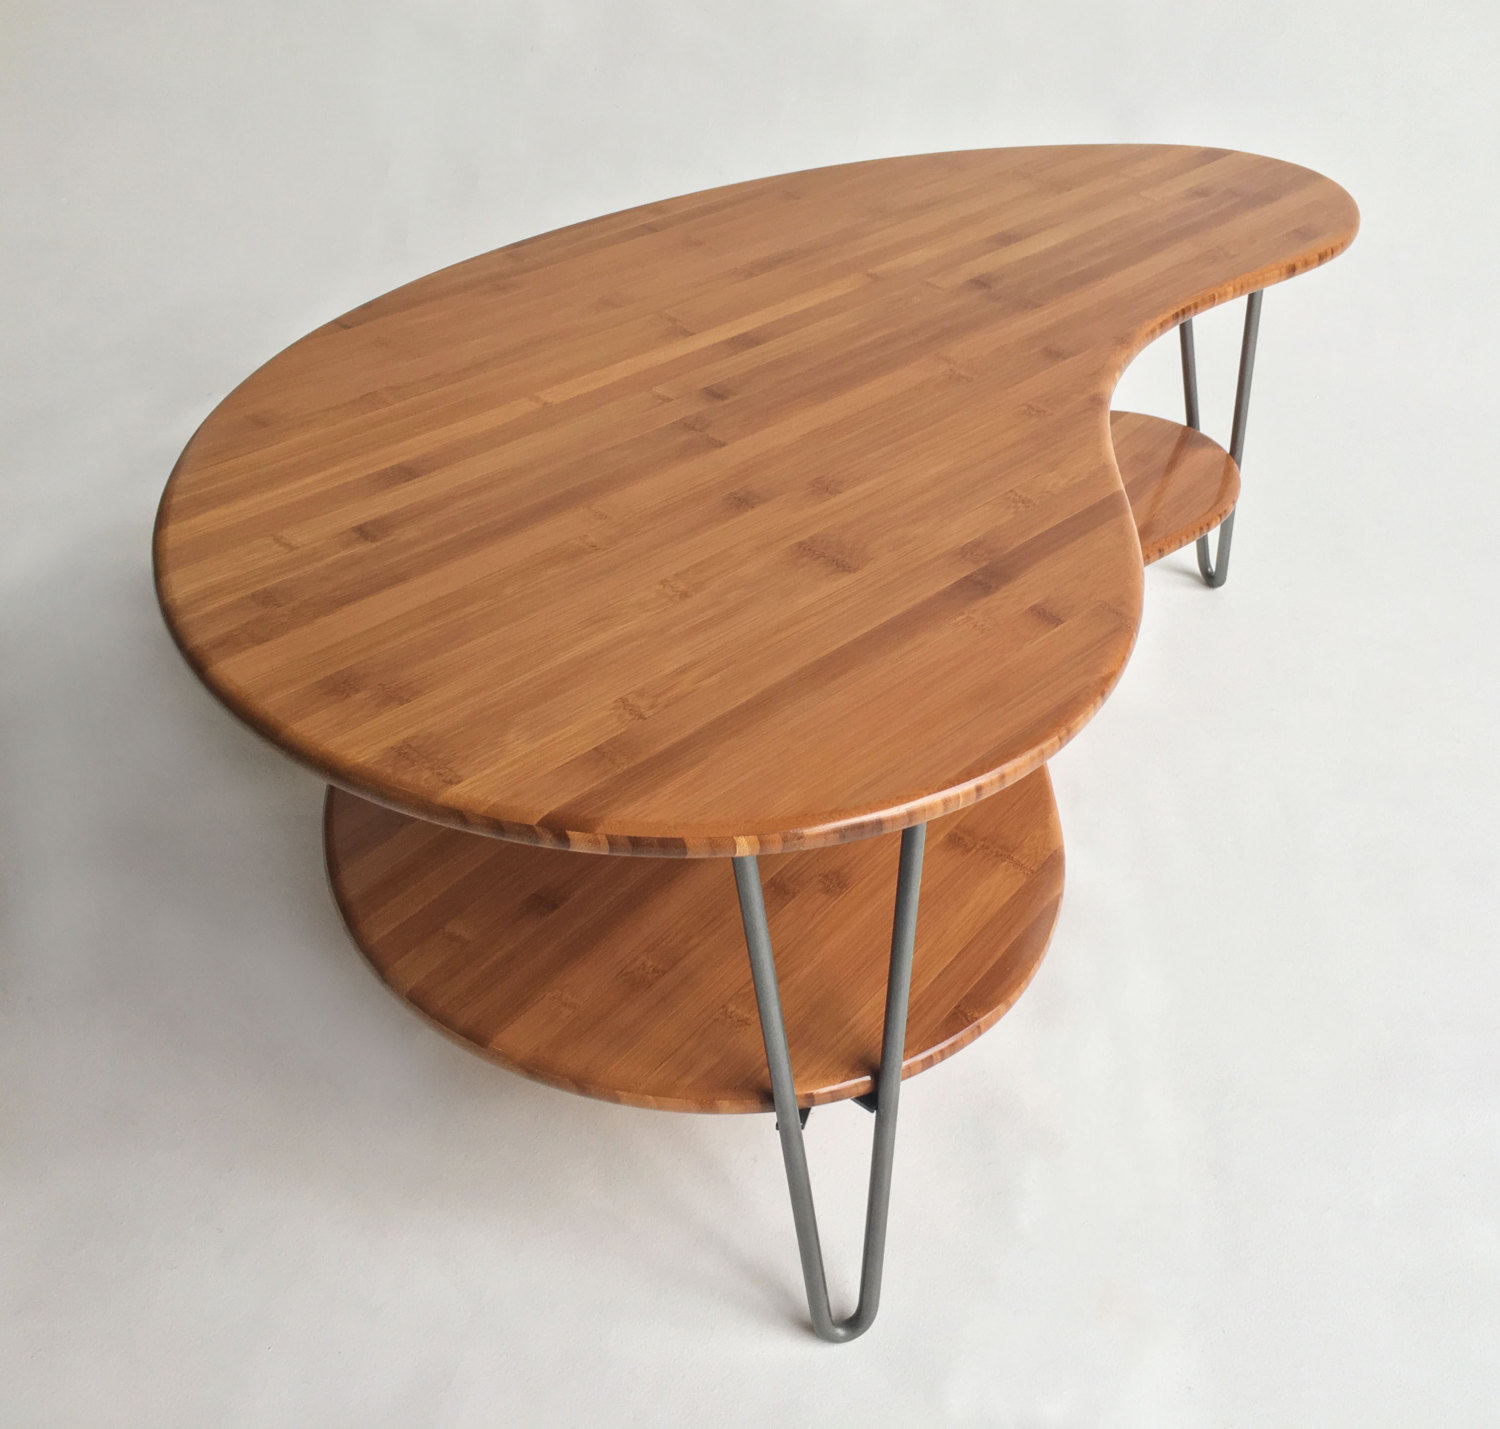 Mid Century Modern Coffee/Cocktail Table Kidney Bean Shaped With Shelf In  Natural Caramelized Bamboo